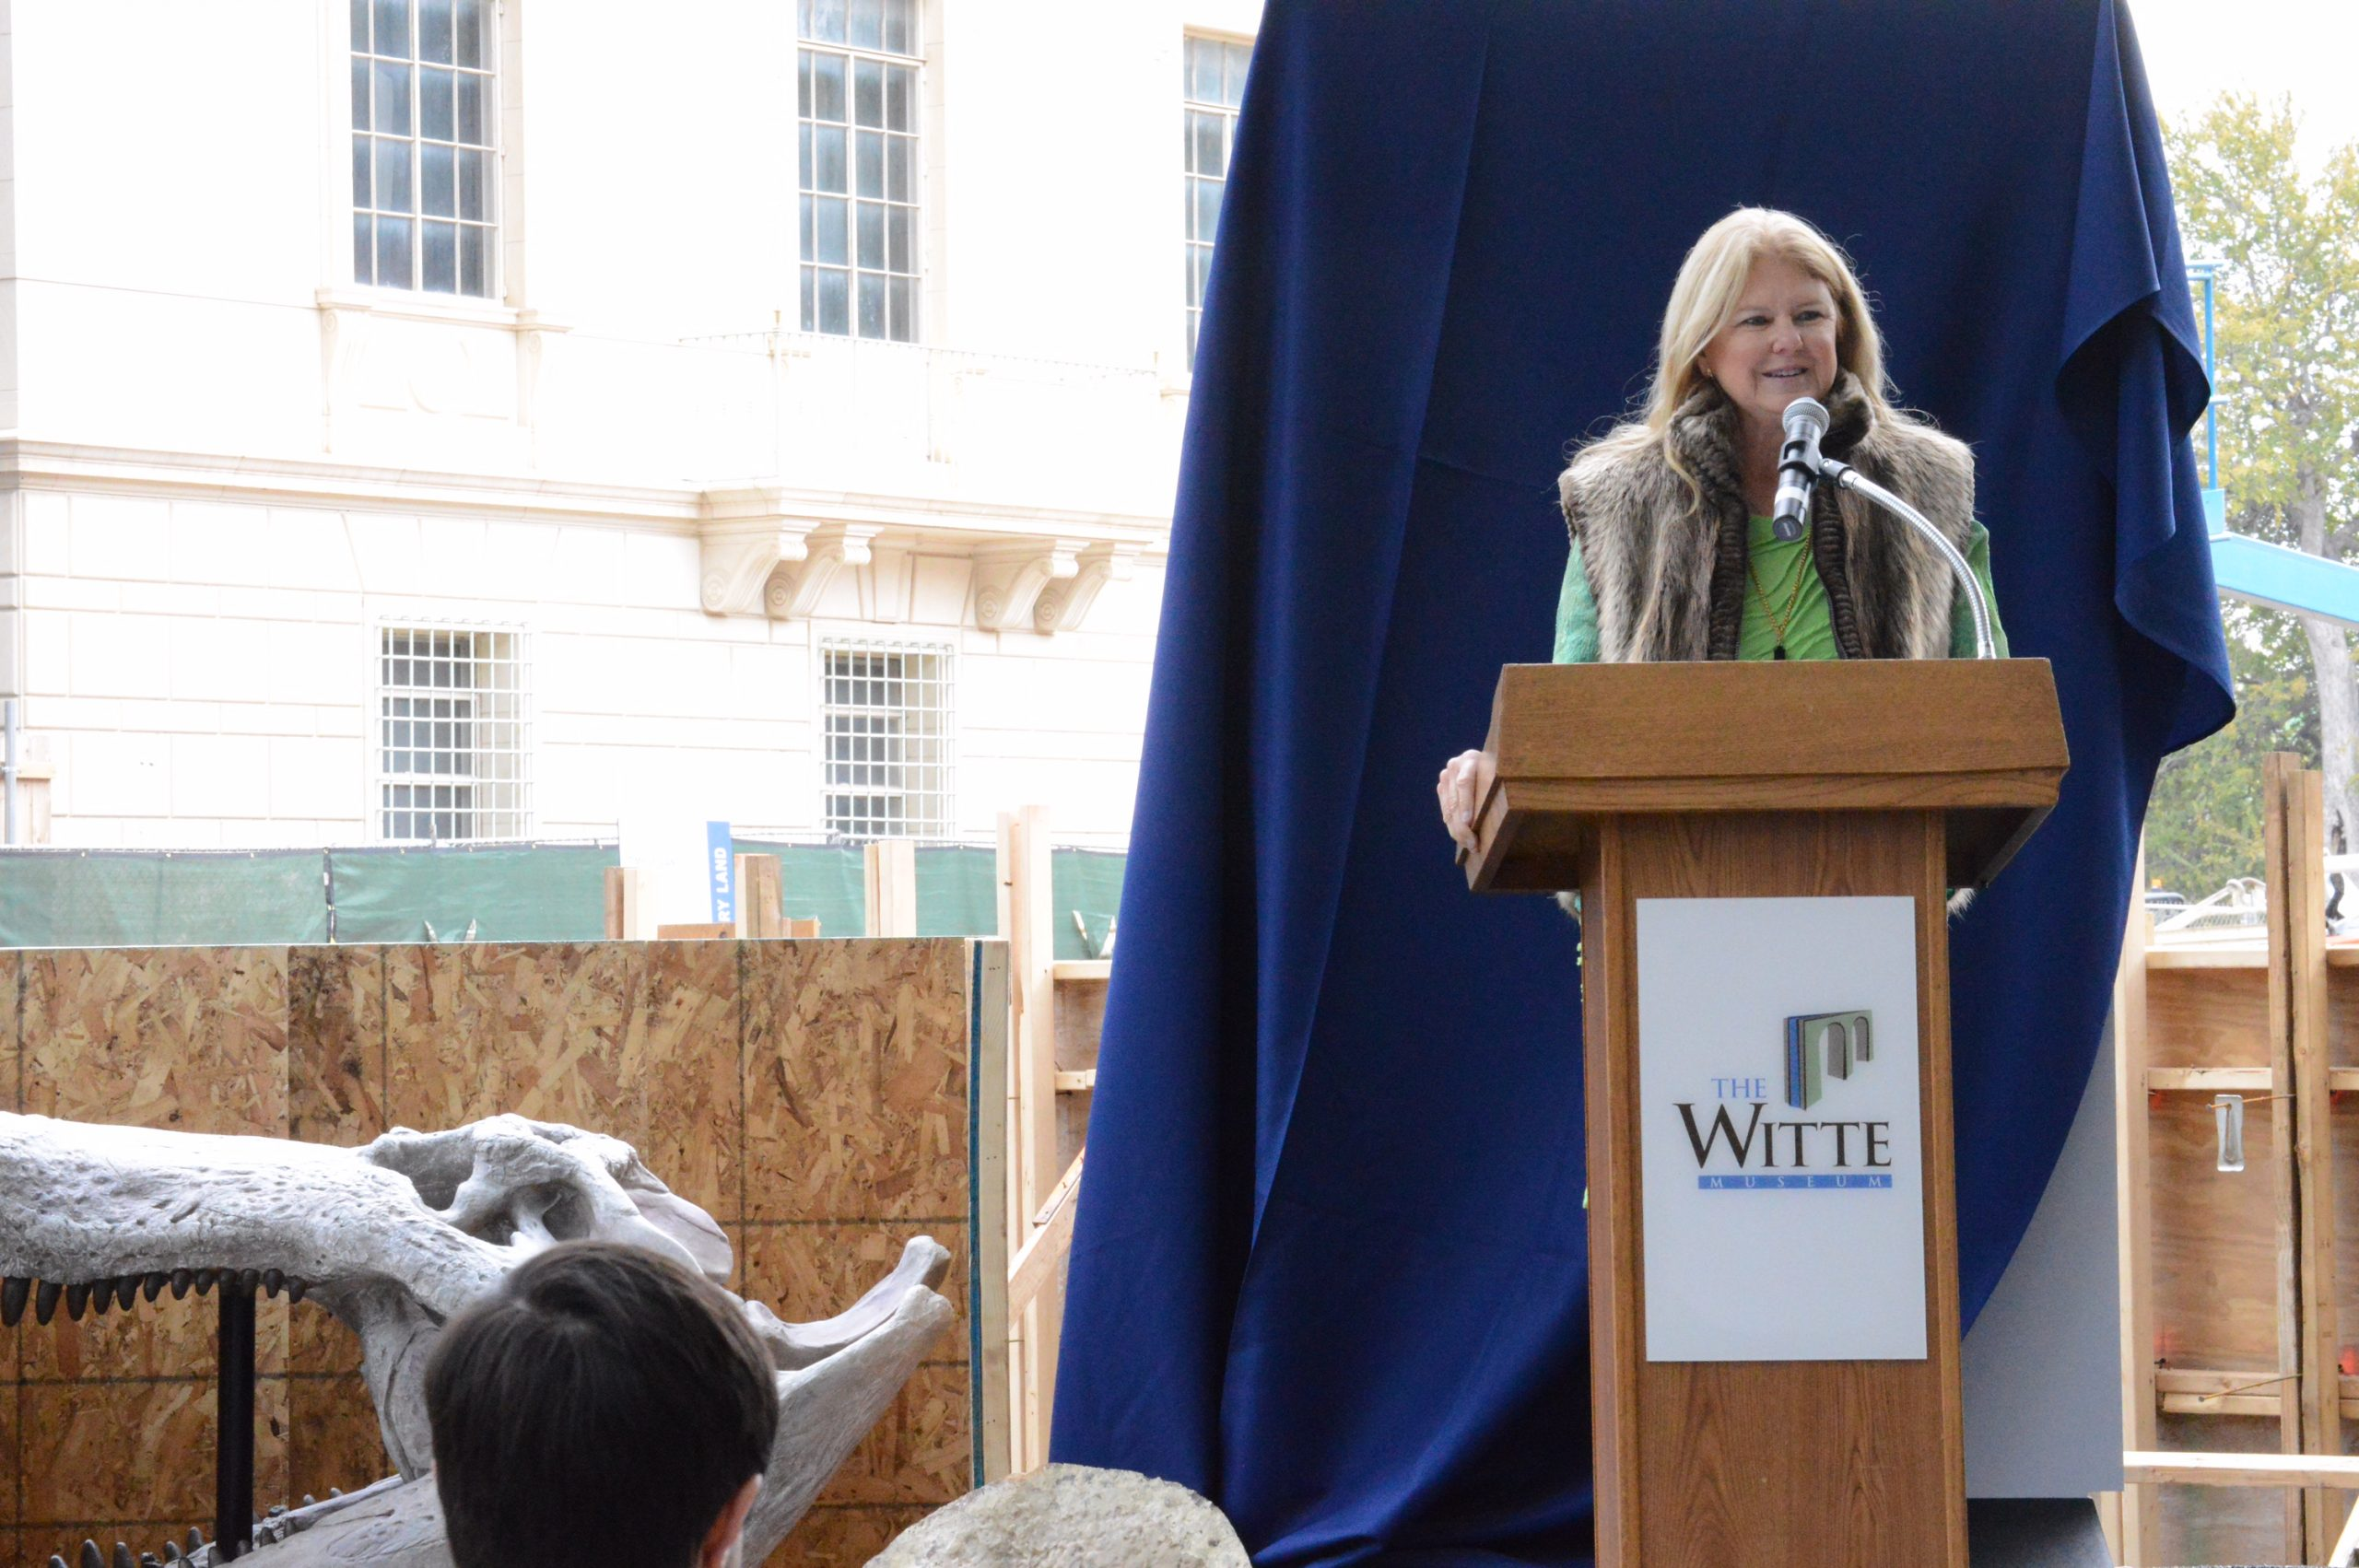 Susan Moulton, trustee of the Witte Museum and president of the Will Smith Foundation, talks about her decision to donate $4 million to the New Witte. Photo by Lea Thompson.